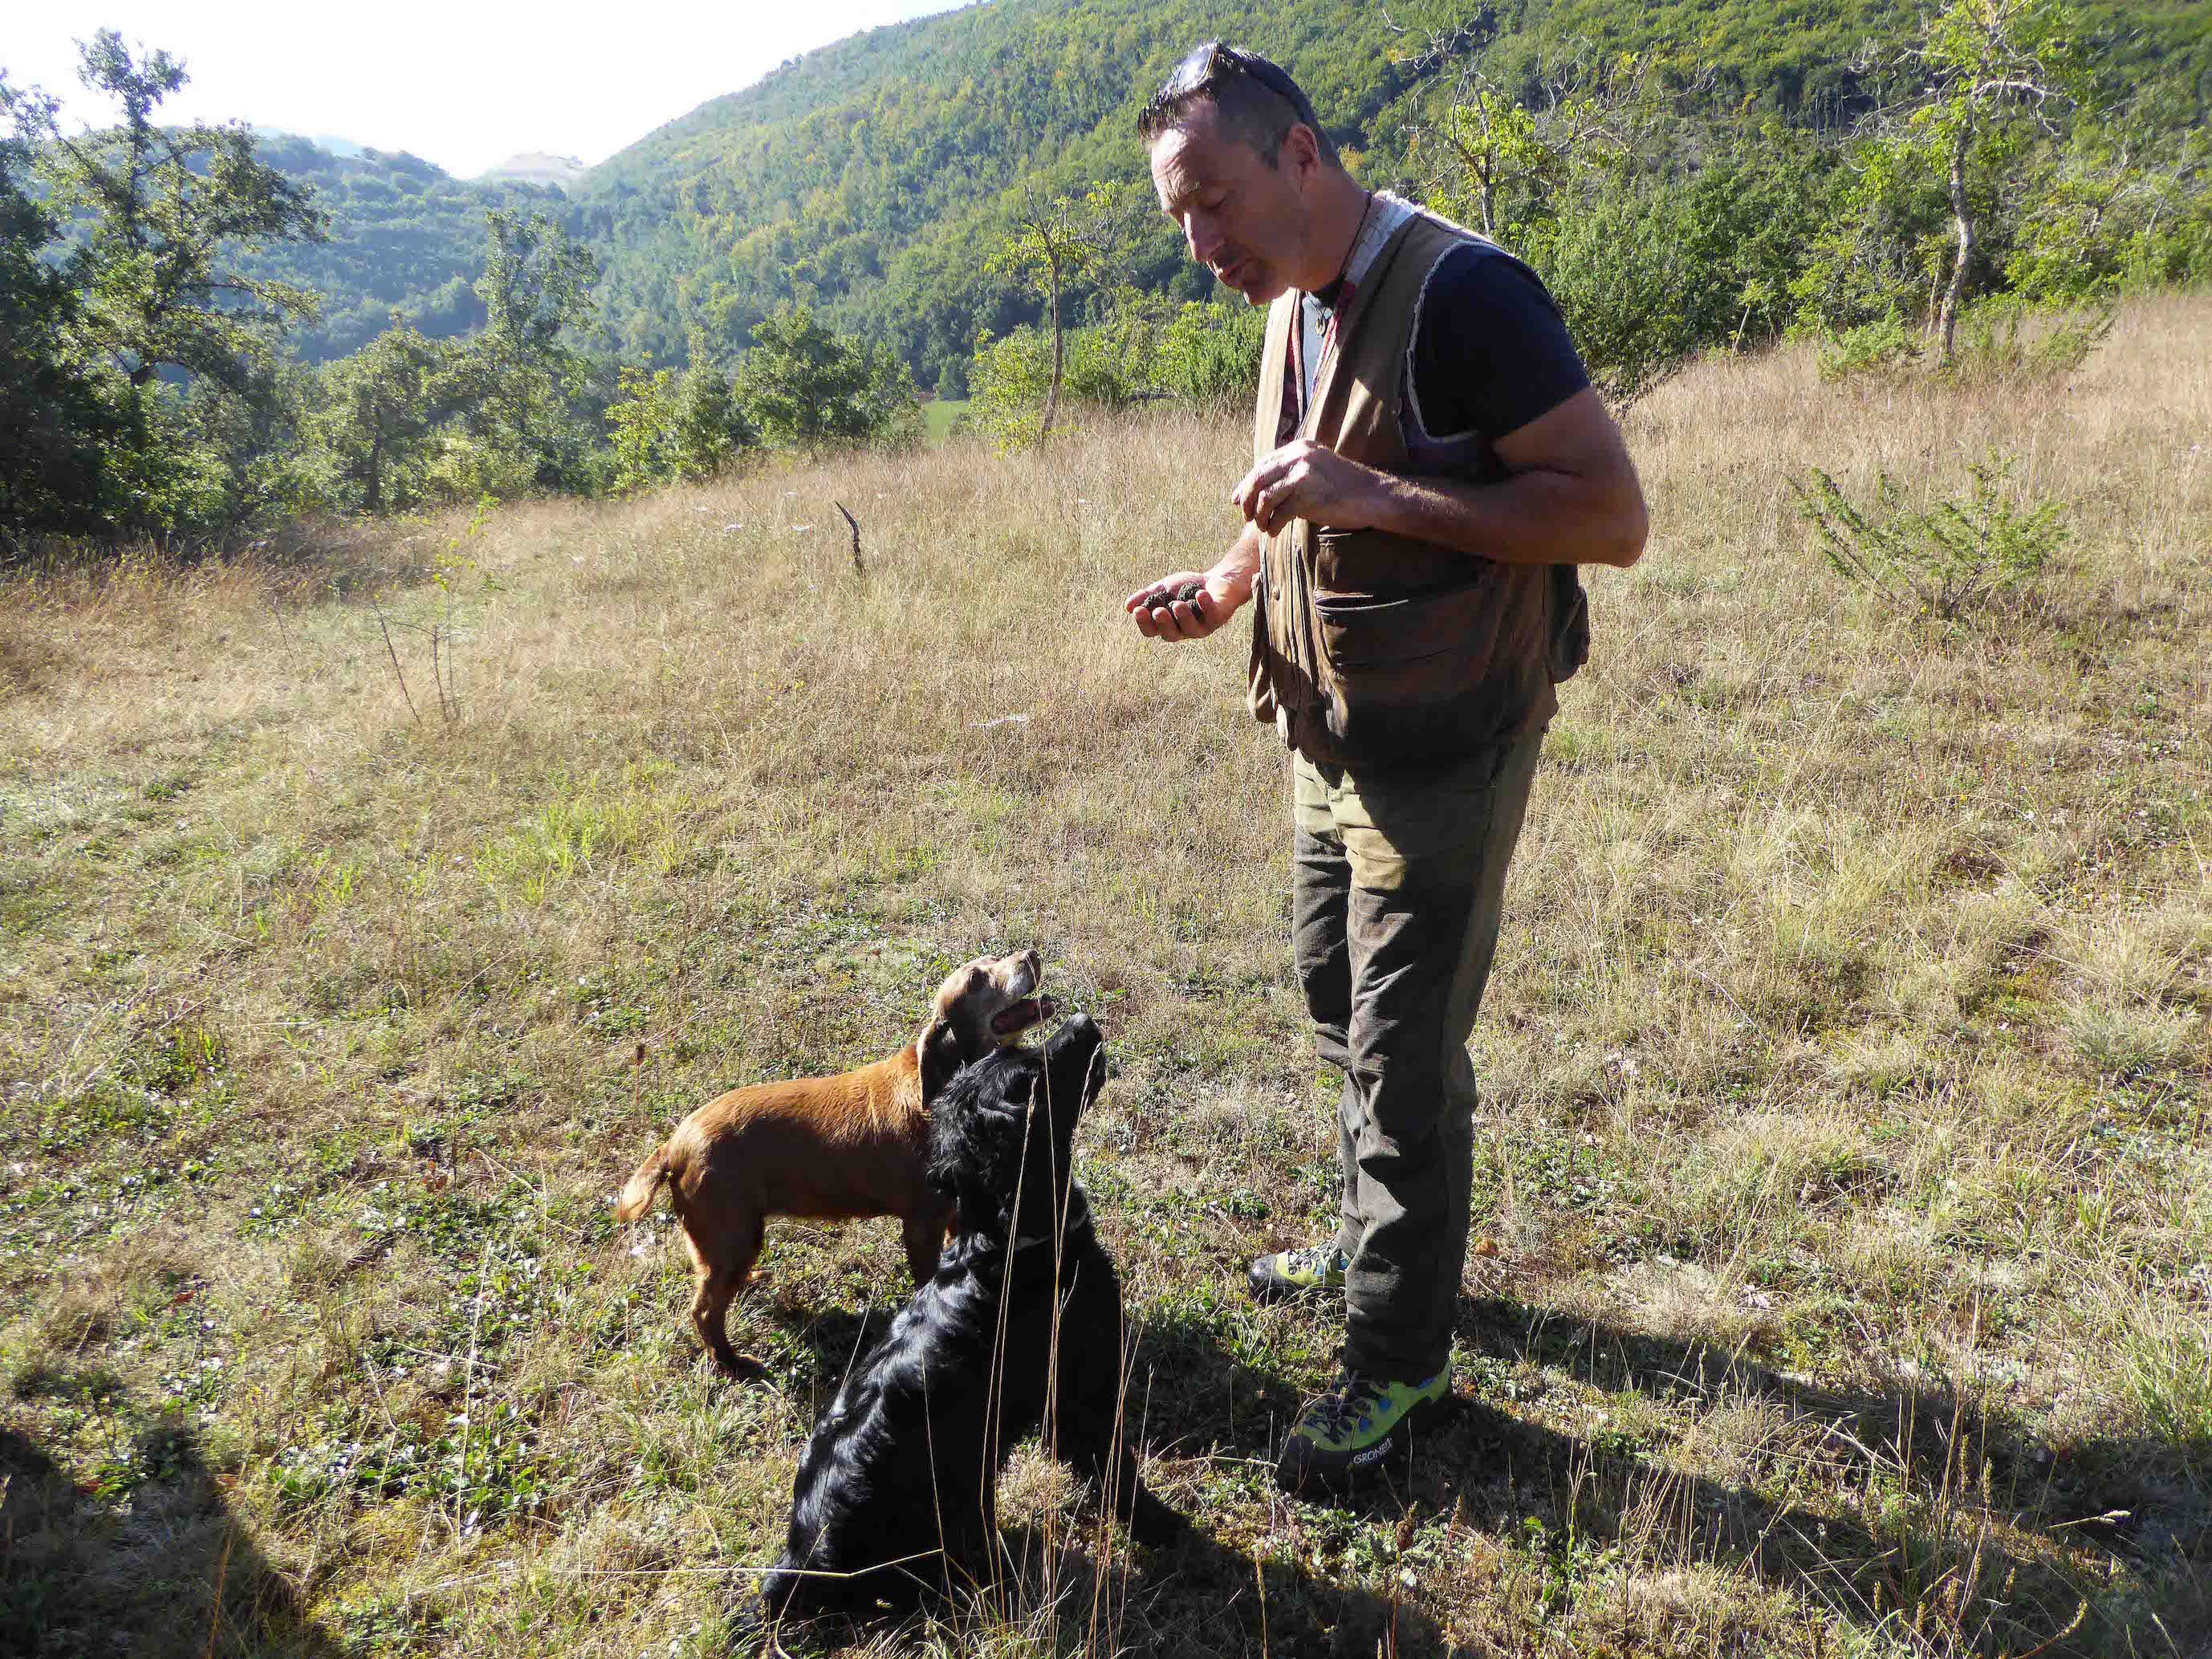 Truffle hunting in Umbria, Italy